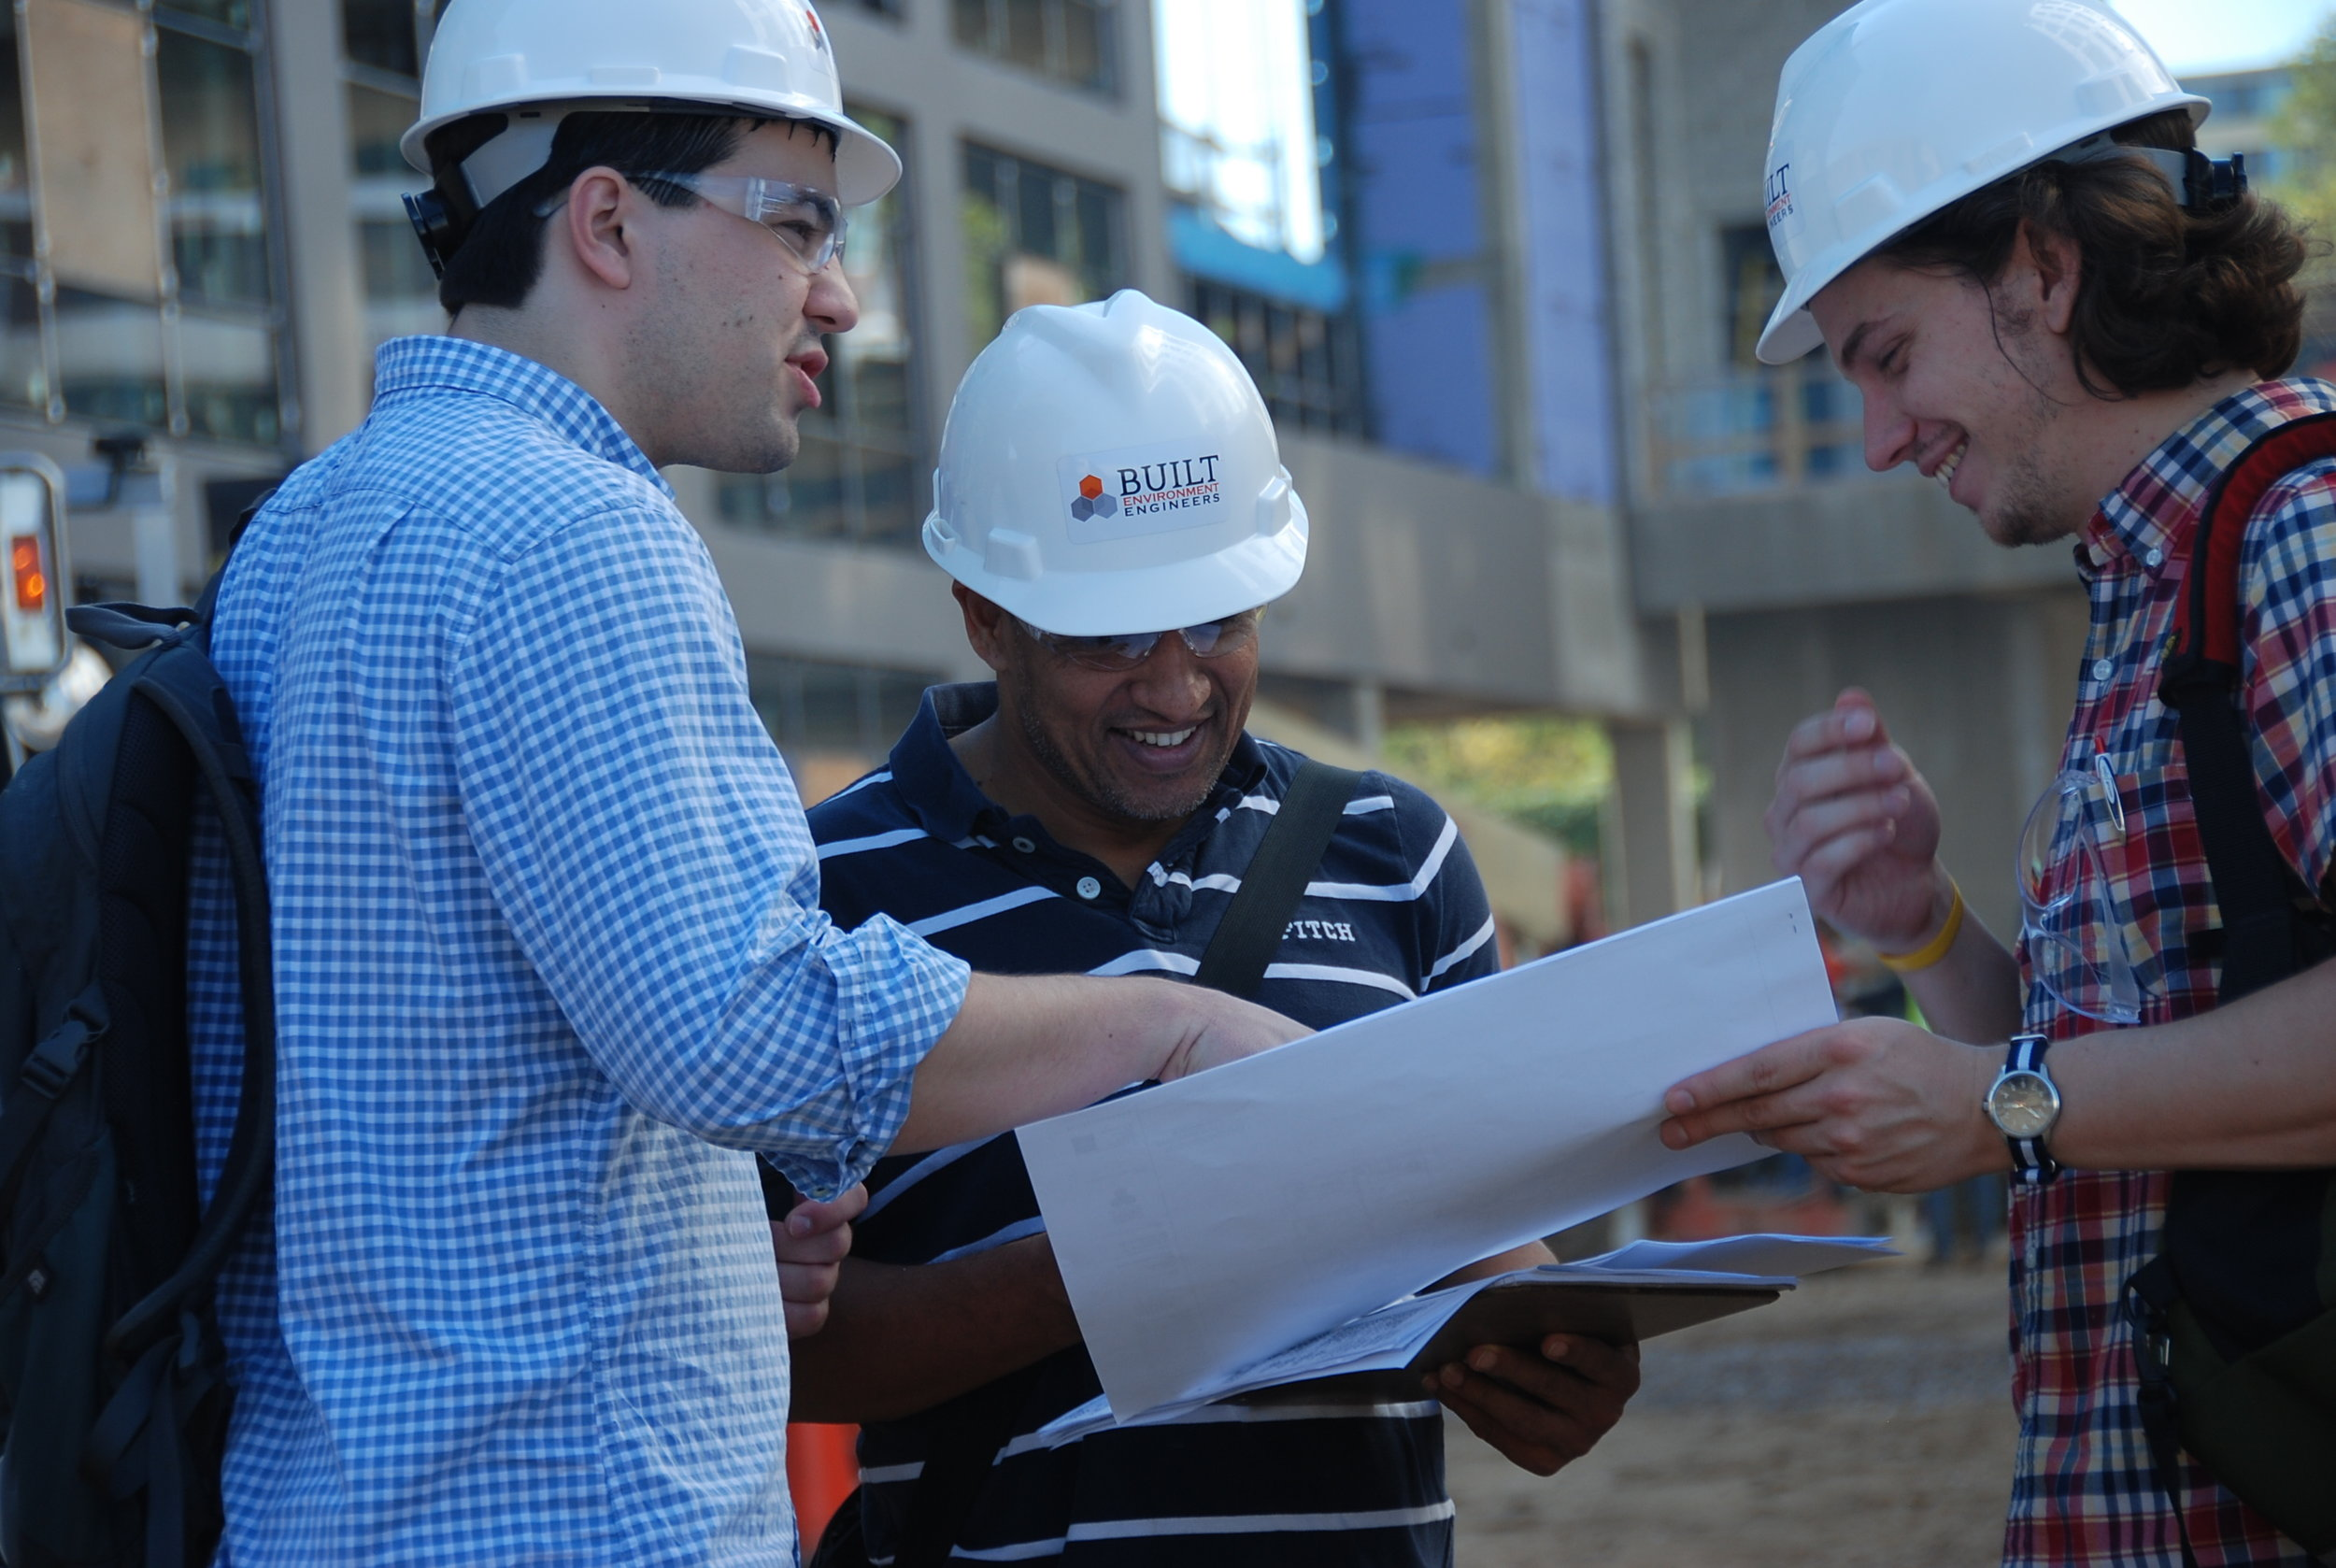 Channing Place A & B, Washington, DC - Ed, Suraj, and Colin completing a monthly field report.